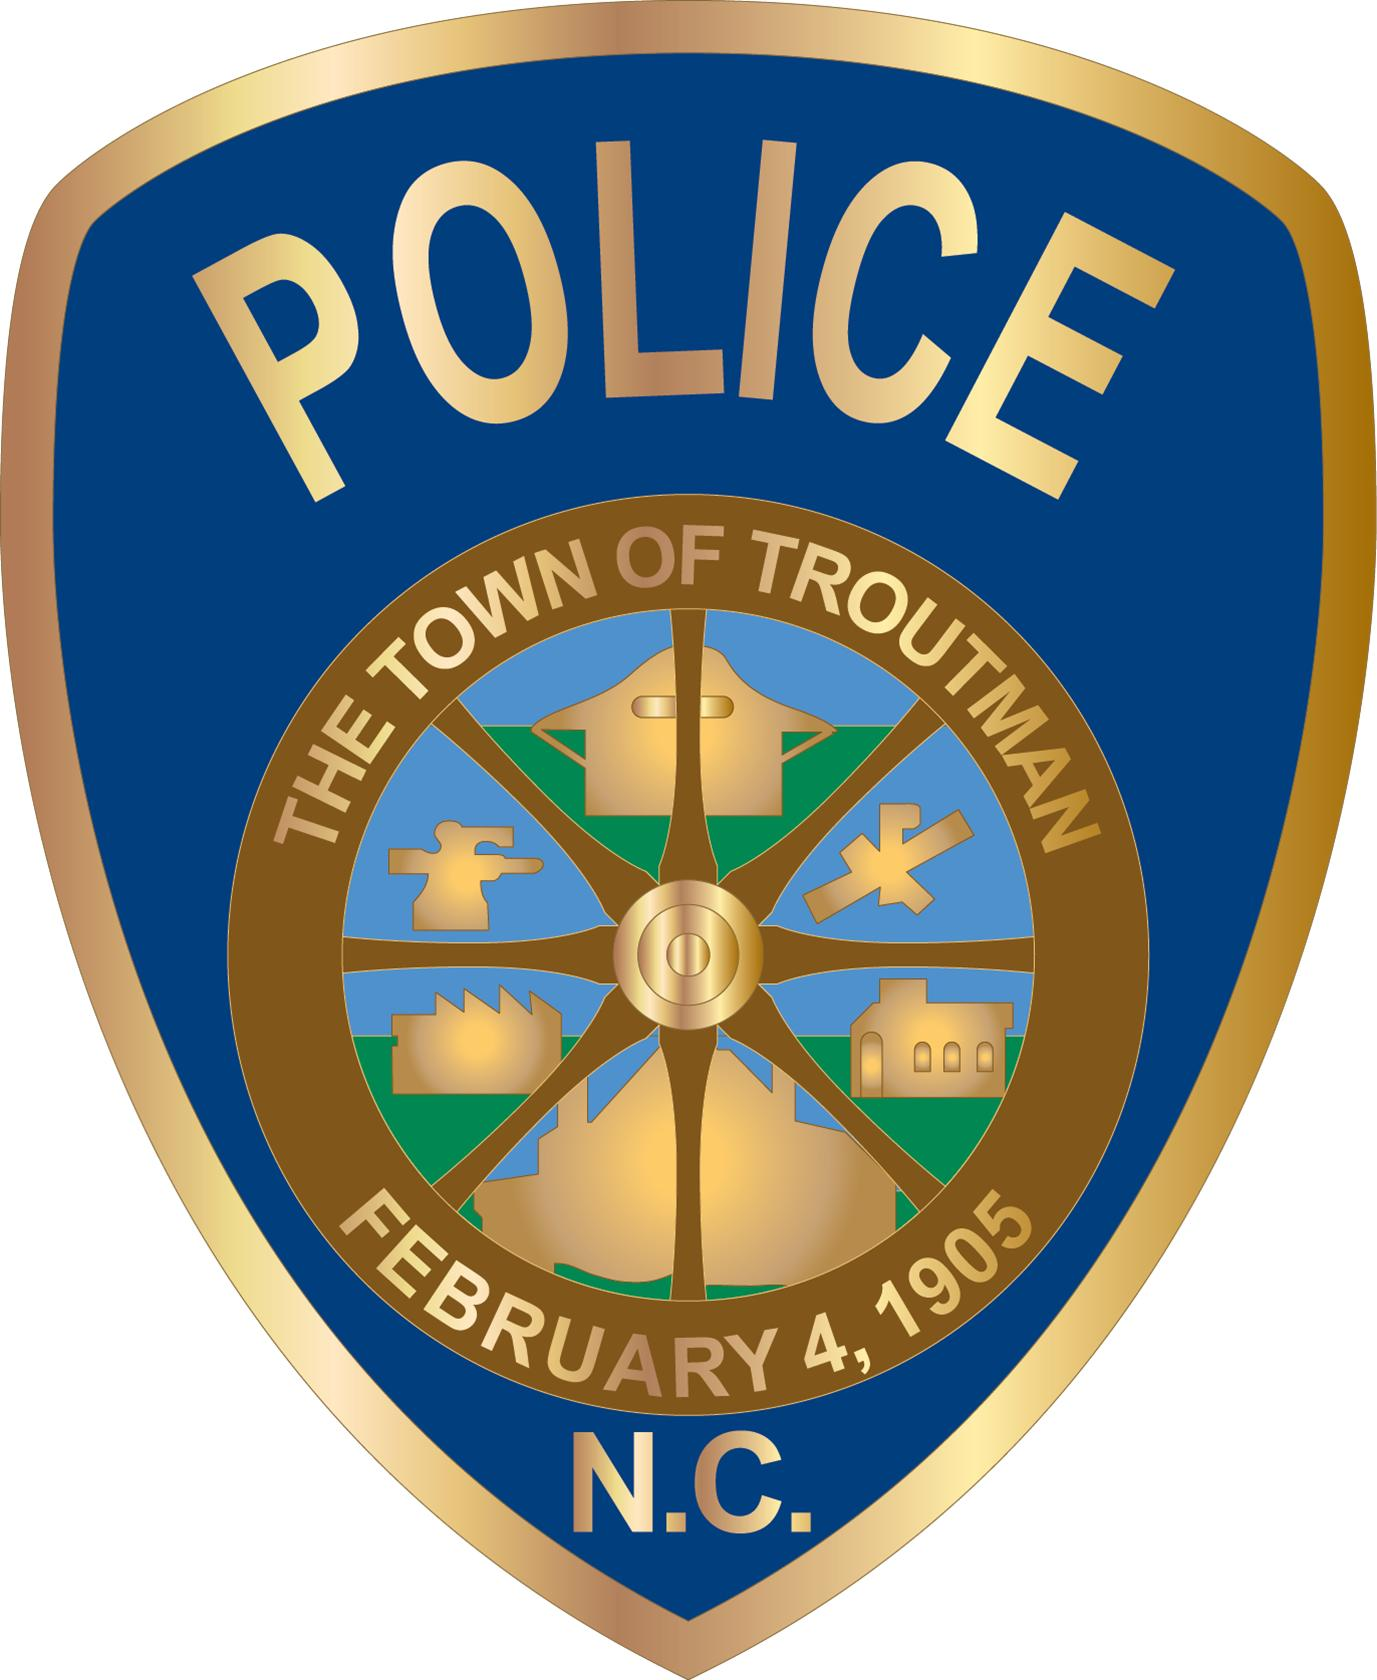 Police Tip Hotline - Official Website of the Town of Troutman, North